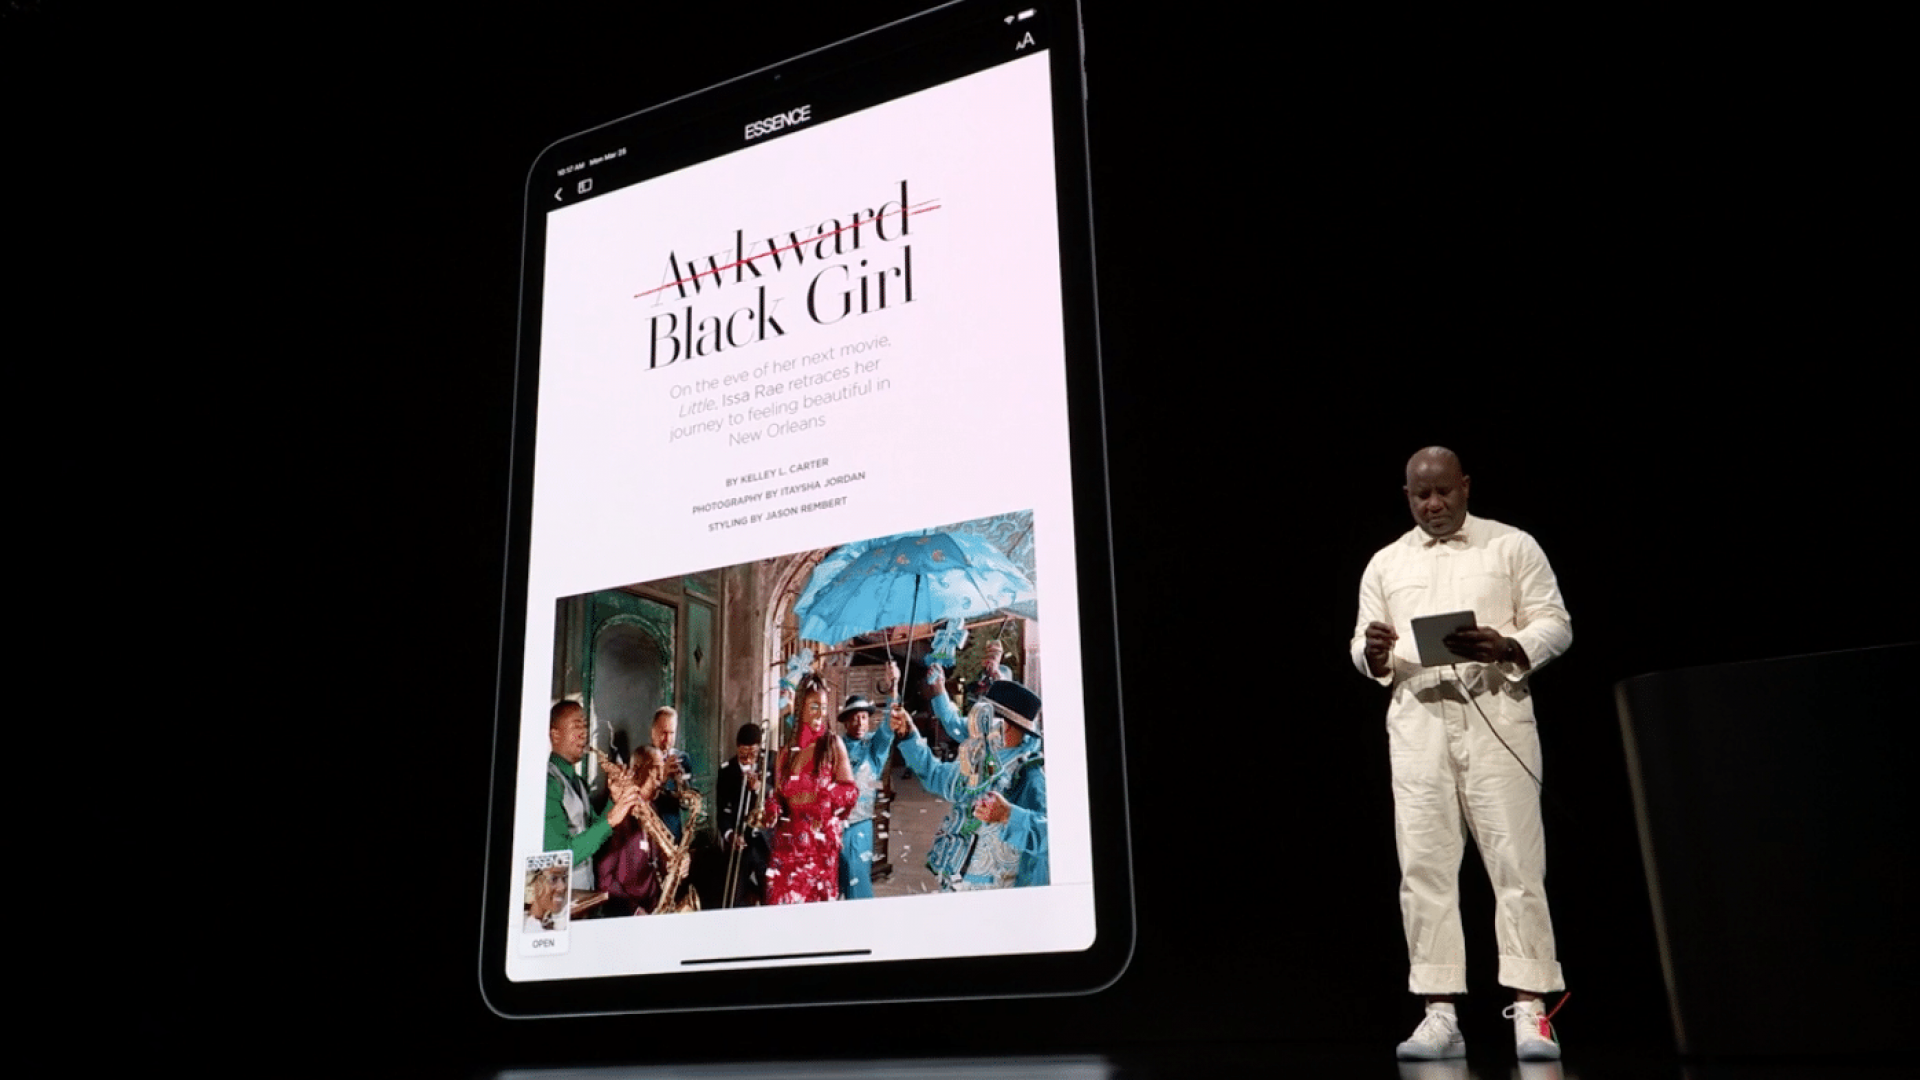 Apple Relaunches News Service With Exclusive ESSENCE Content